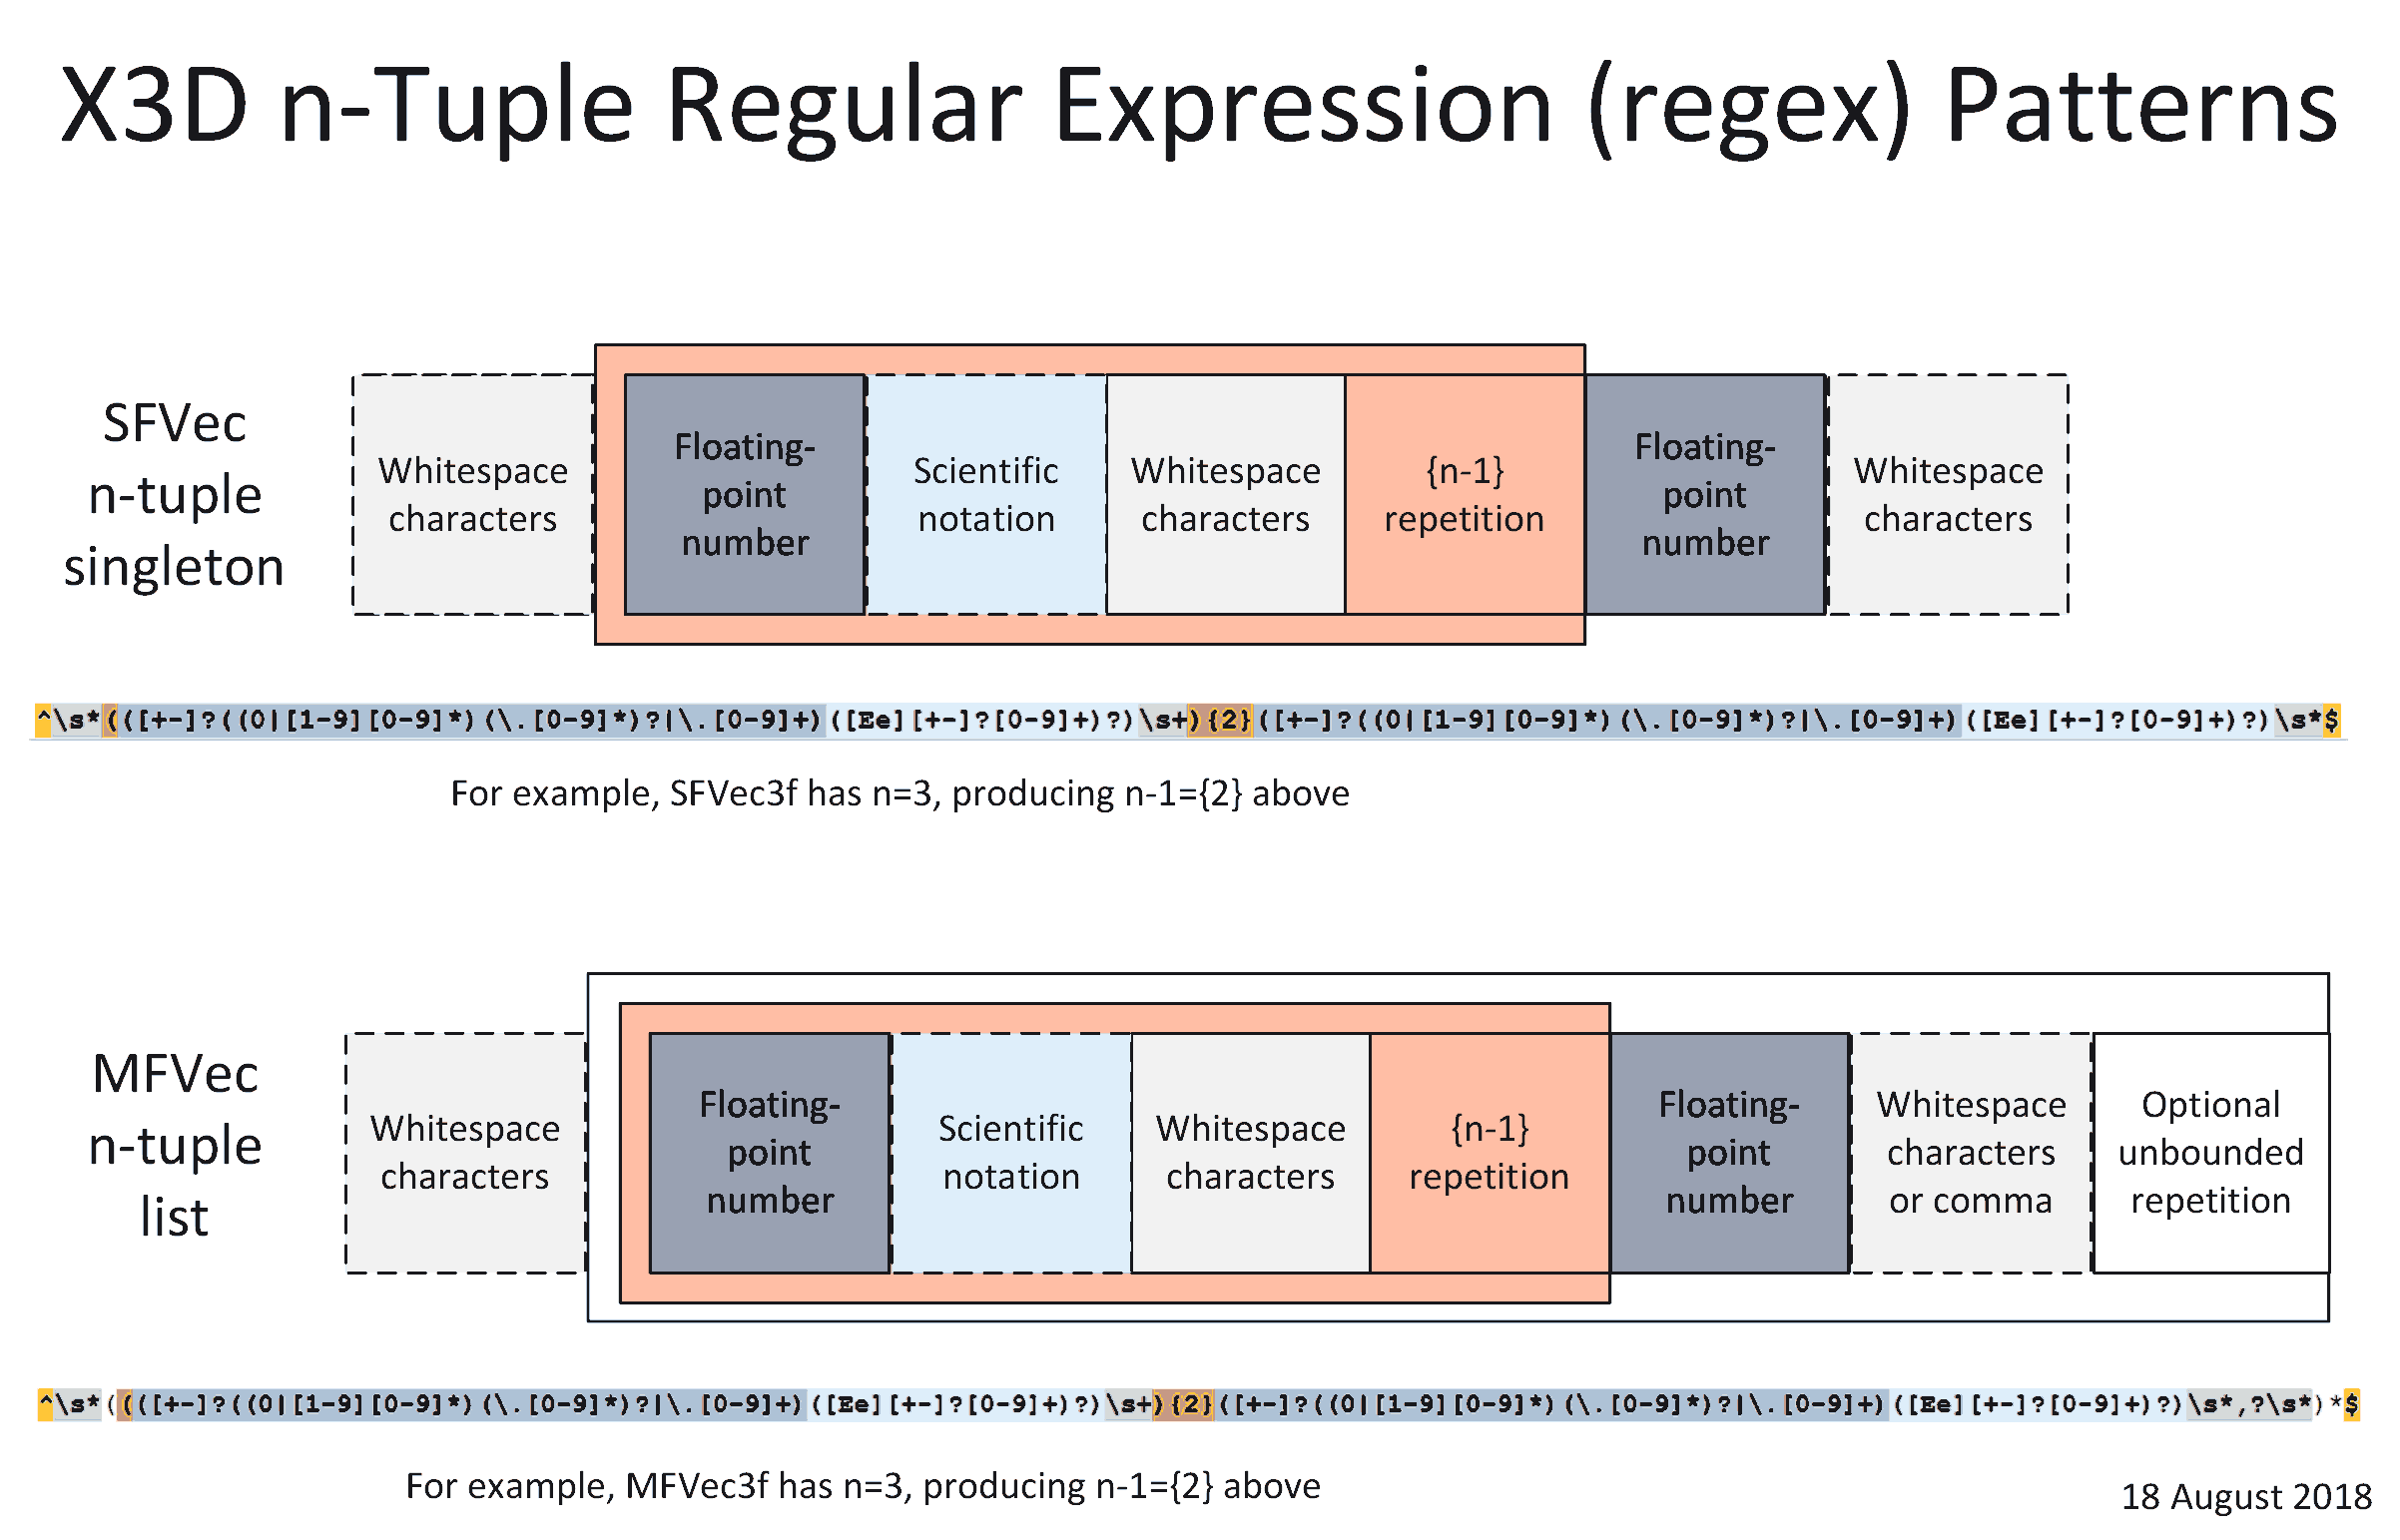 X3D Regular Expressions (regexes)